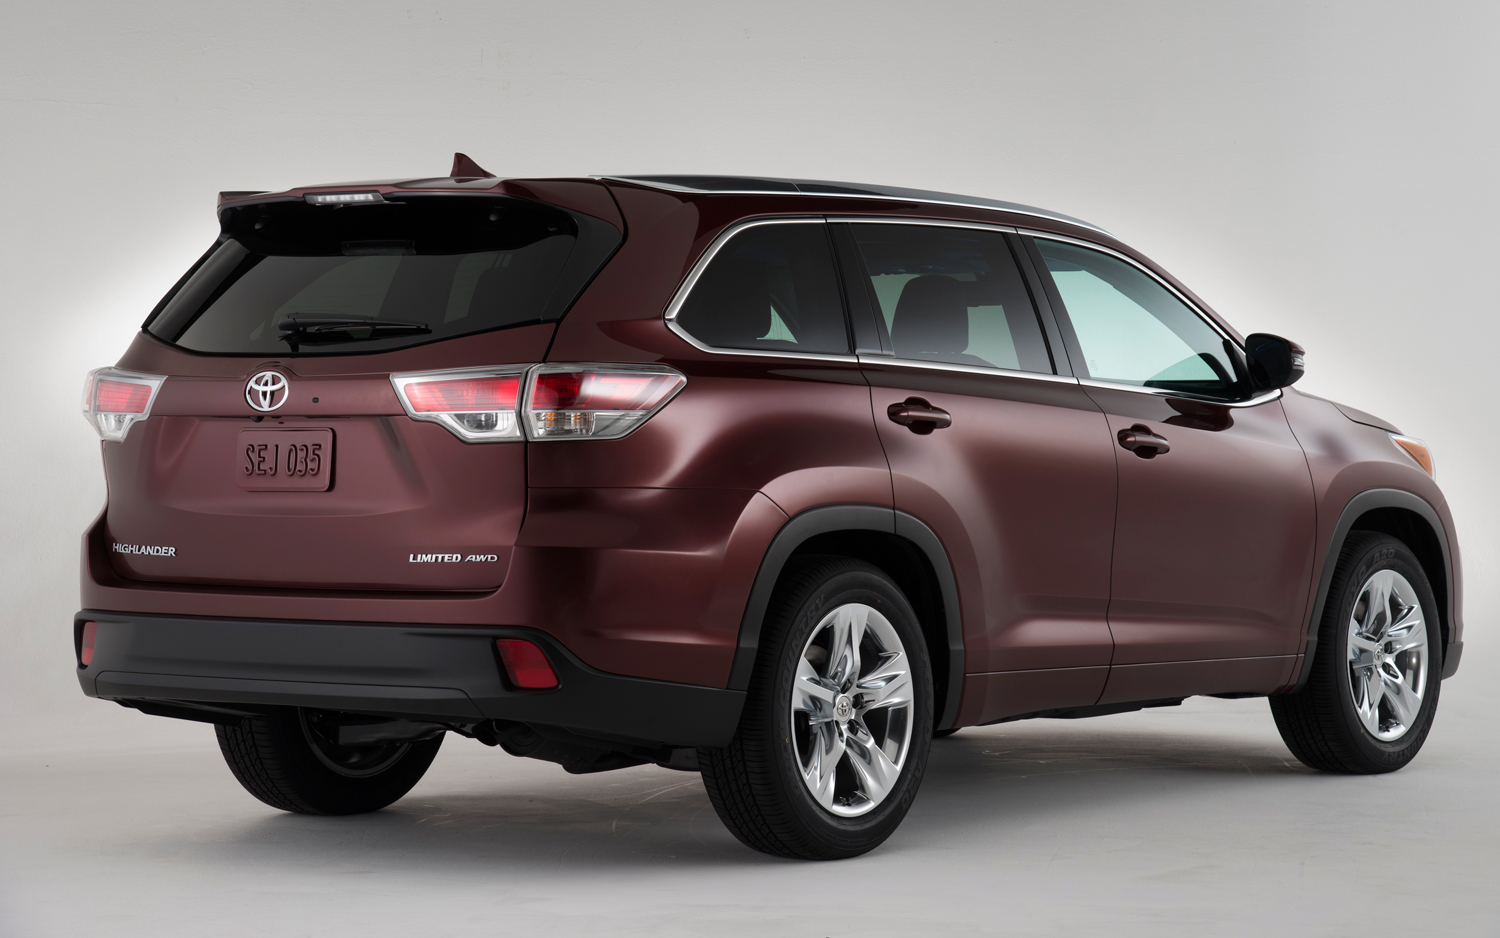 2014 Toyota Highlander Exterior Specs Against Pilot